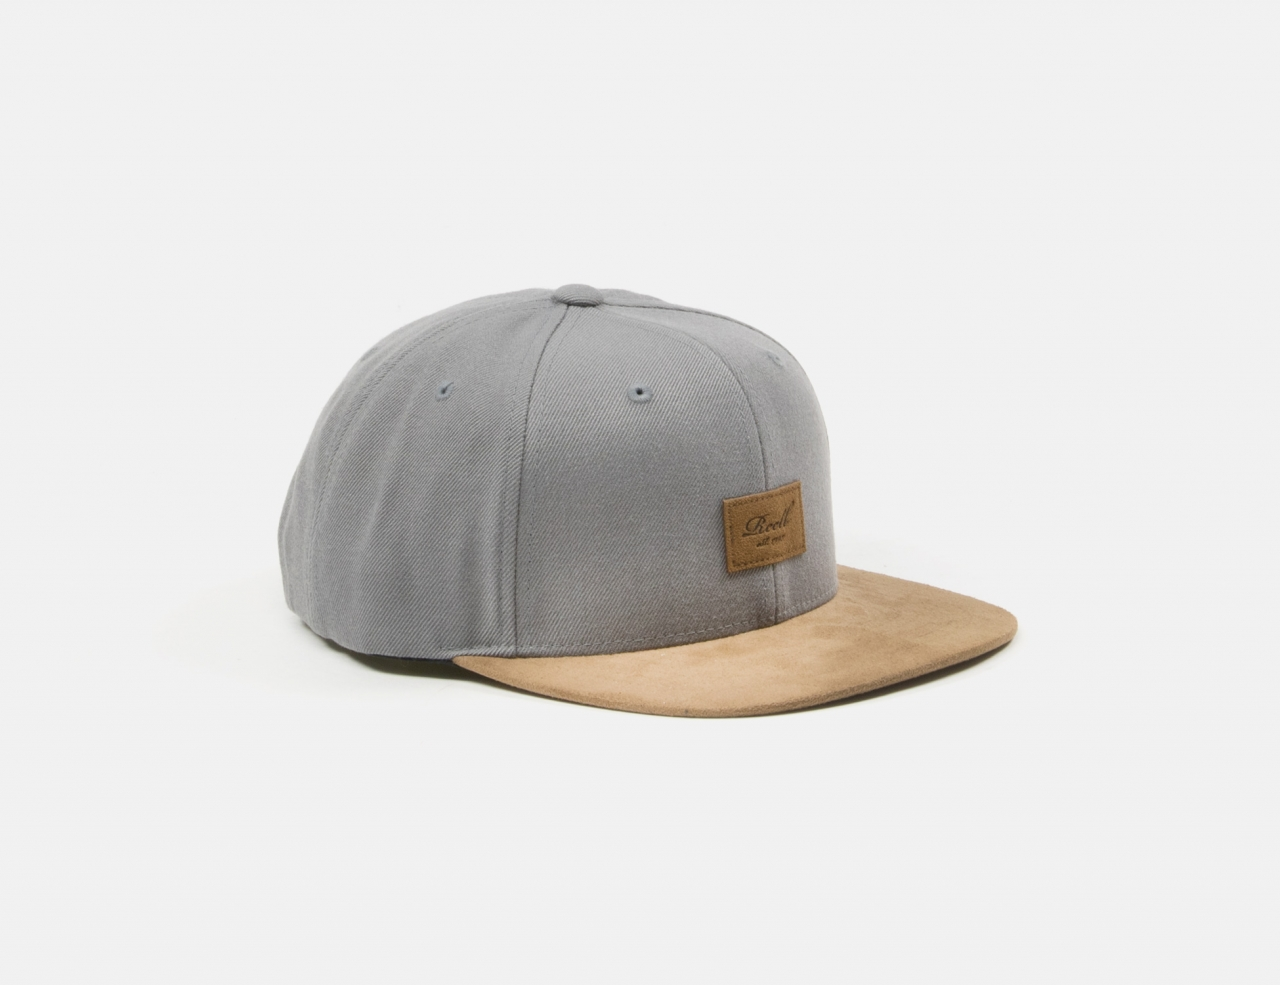 Reell Jeans Suede Snapback Cap - Light Charcoal